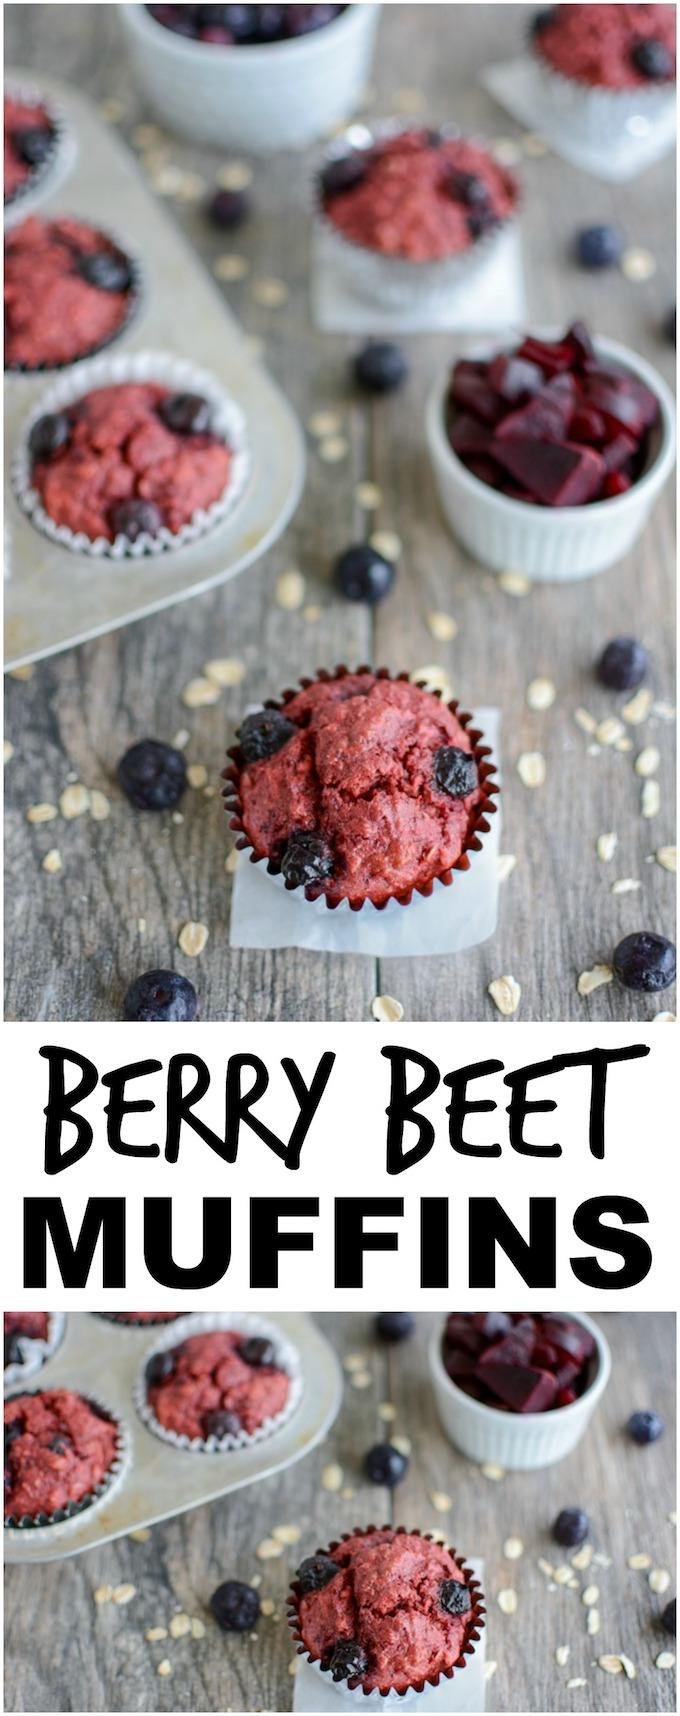 These Blueberry Beet Muffins are a healthy, kid-friendly breakfast or snack. Their pink color makes them fun to eat and you'd never know they're packed with vegetables!